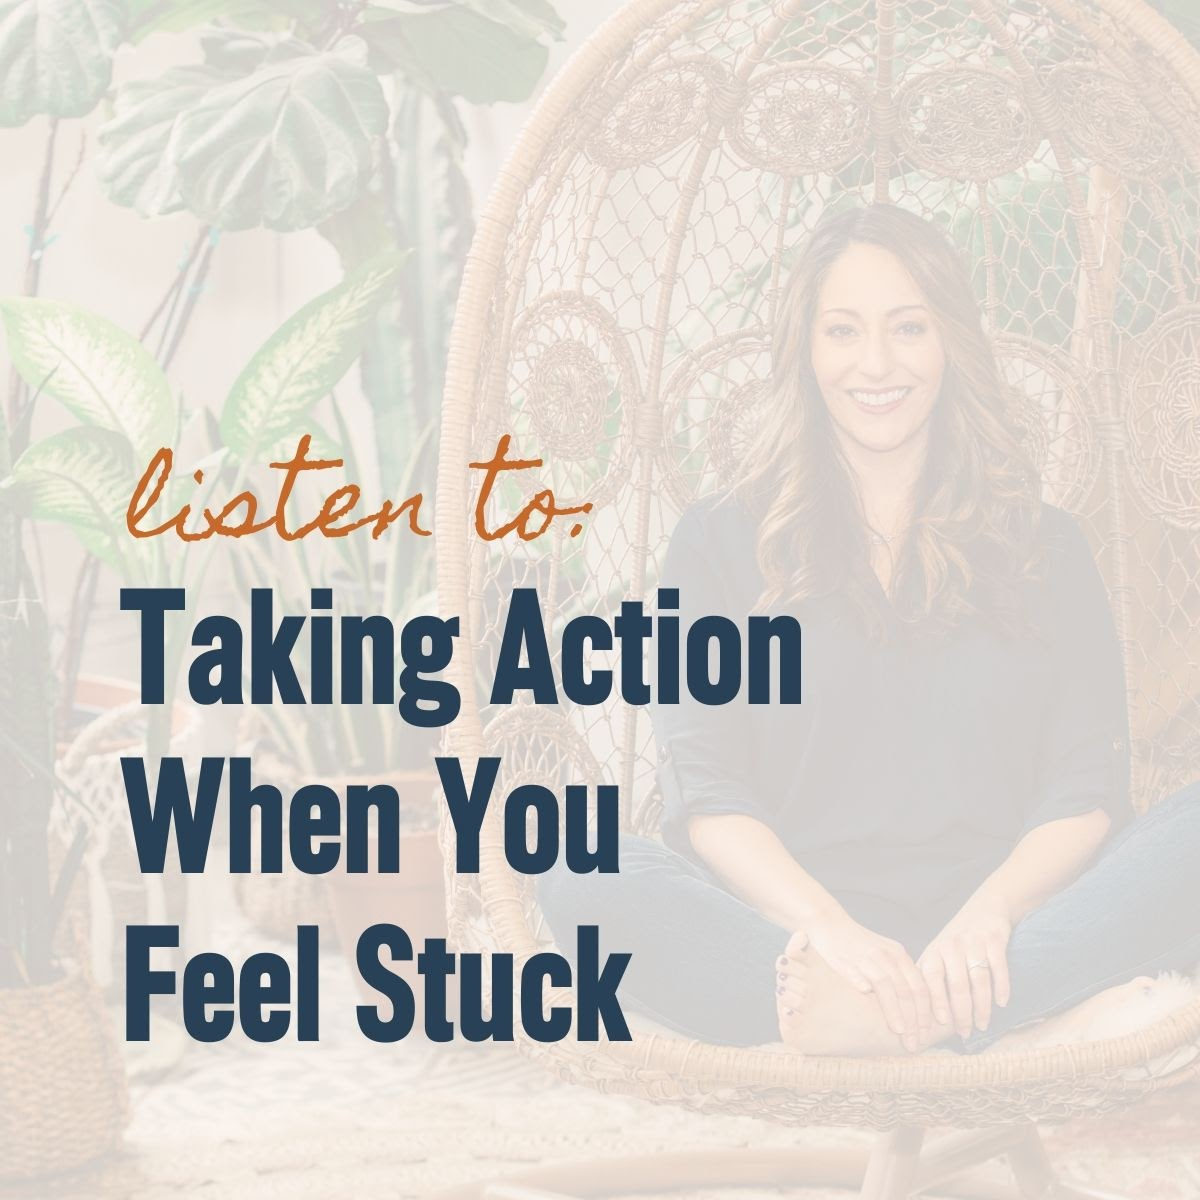 Listen to: Taking Action When You Feel Stuck with JRNI Coaching CEO and Co-Founder Noelle Cordeaux in the background